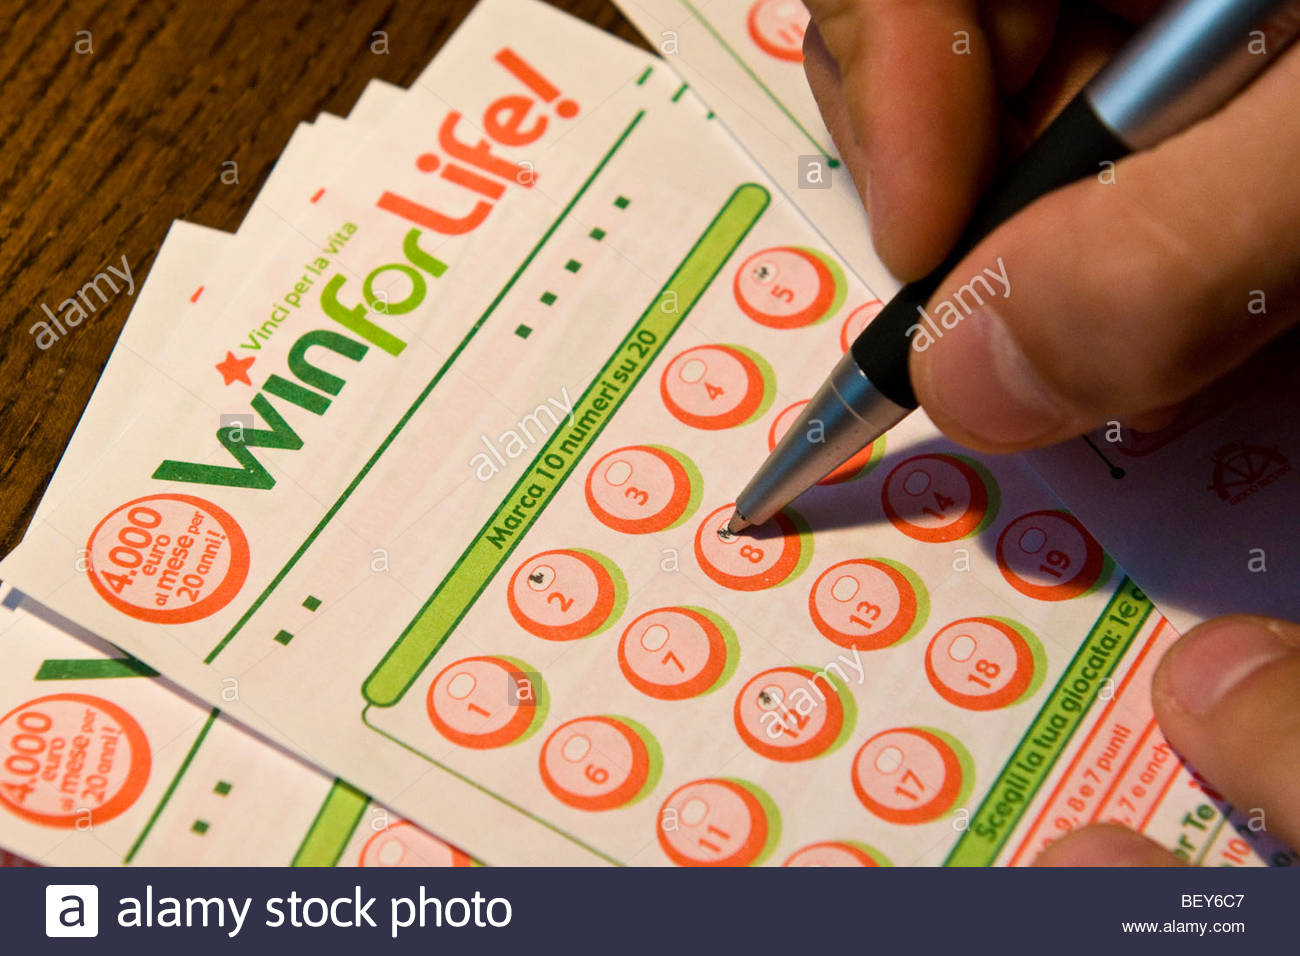 how to play set for life lottery